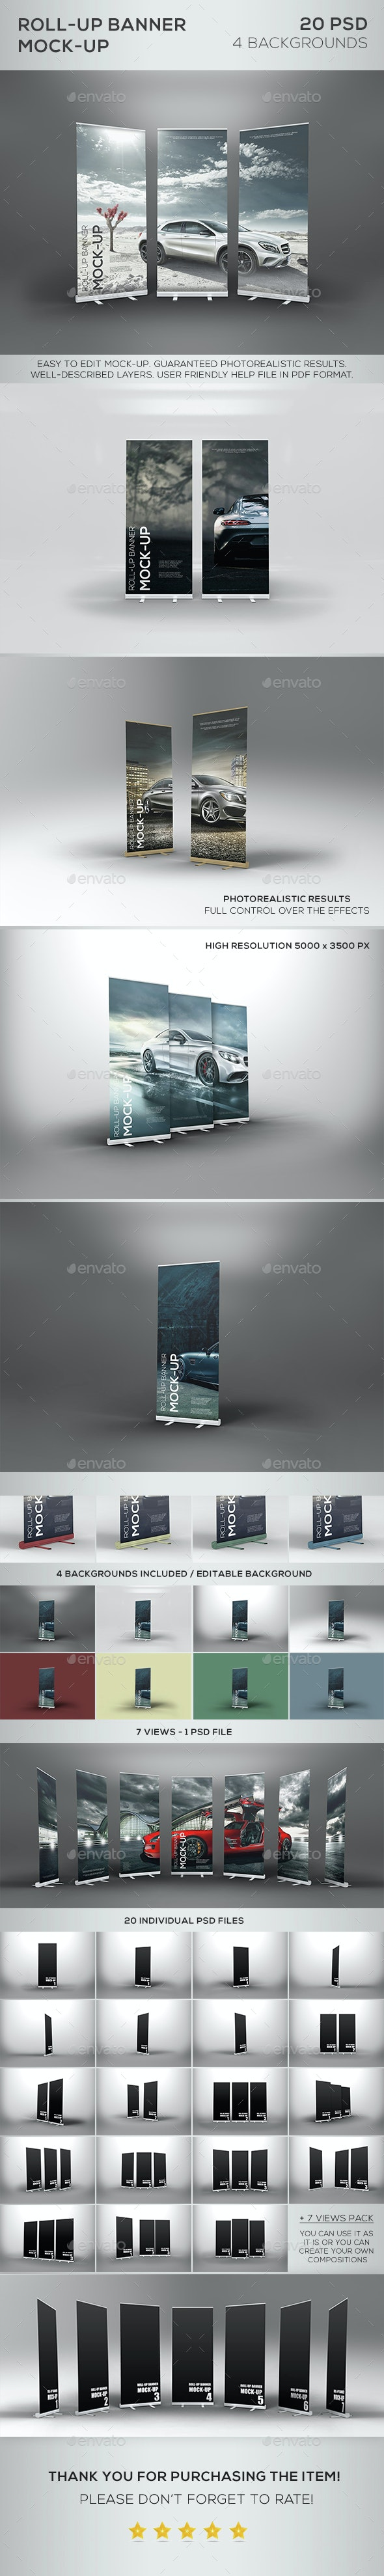 Roll-Up Banner Mock-Up - Product Mock-Ups Graphics